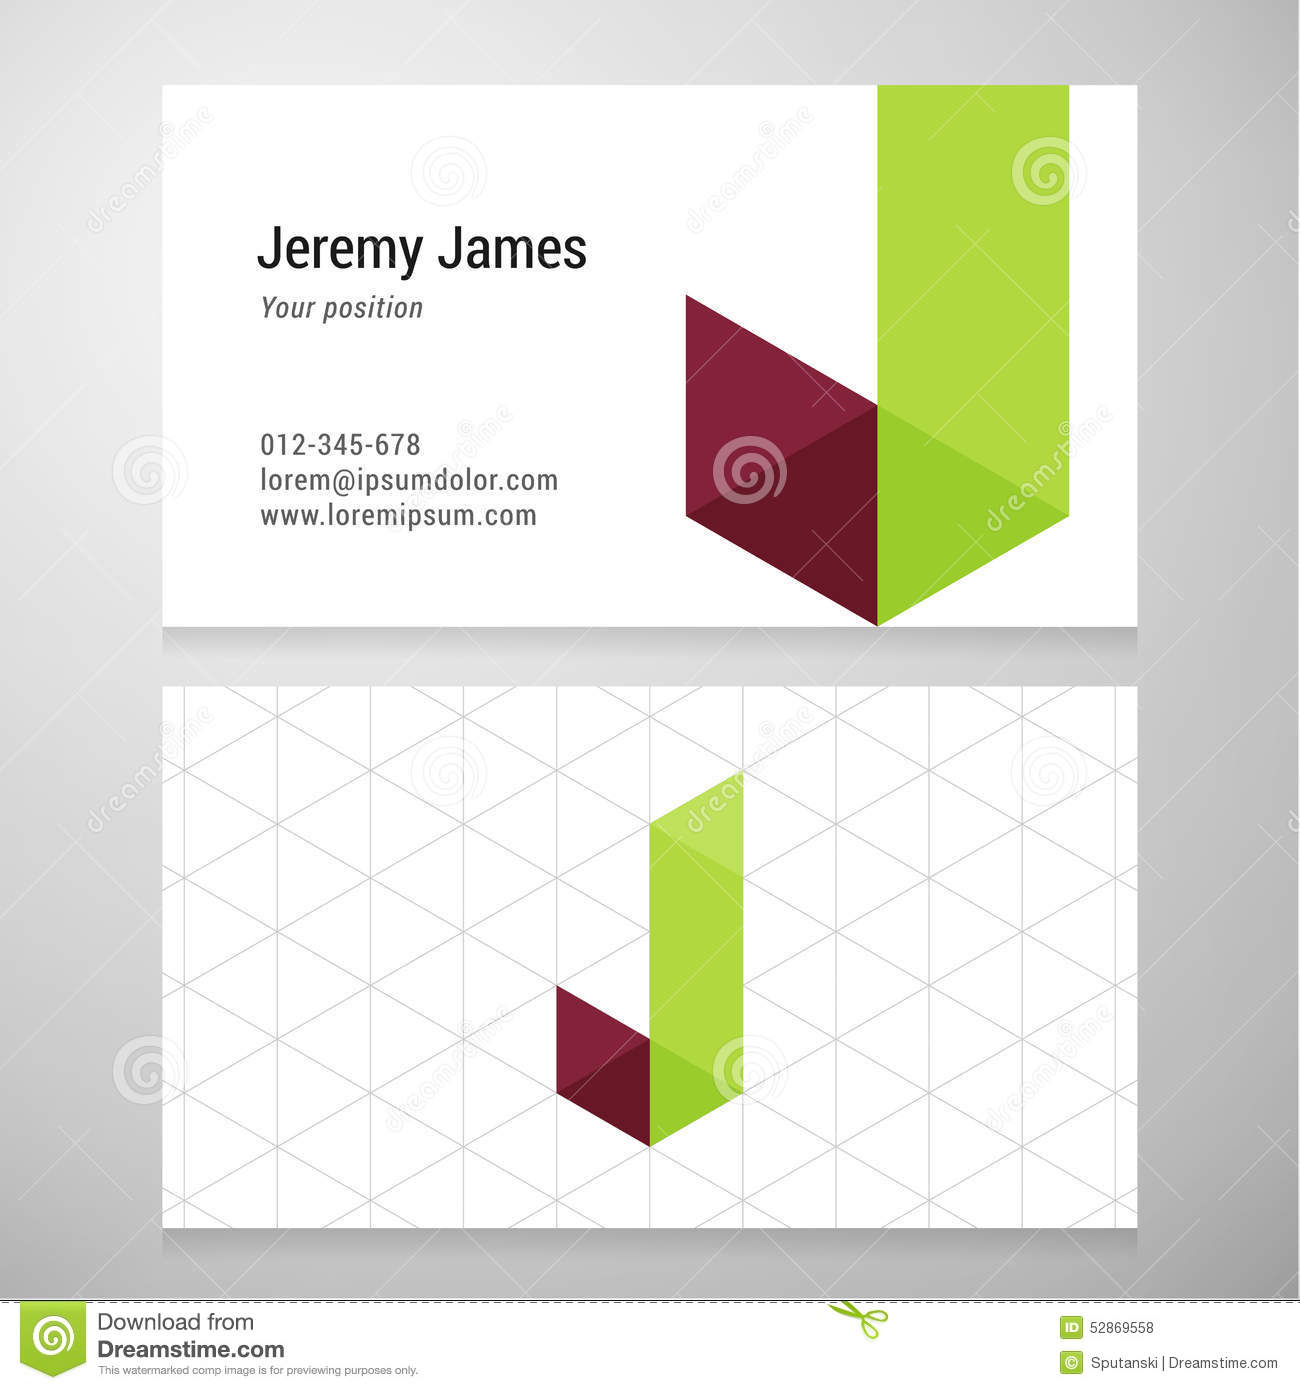 Pretty 1 Inch Button Template Huge 10 Envelope Template Illustrator Solid 10 Label Template 10 Tips For A Great Resume Young 10 Tips For Making A Resume Pink10 Tips For Writing A Resume Modern Letter J Origami Business Card Template Stock Vector ..